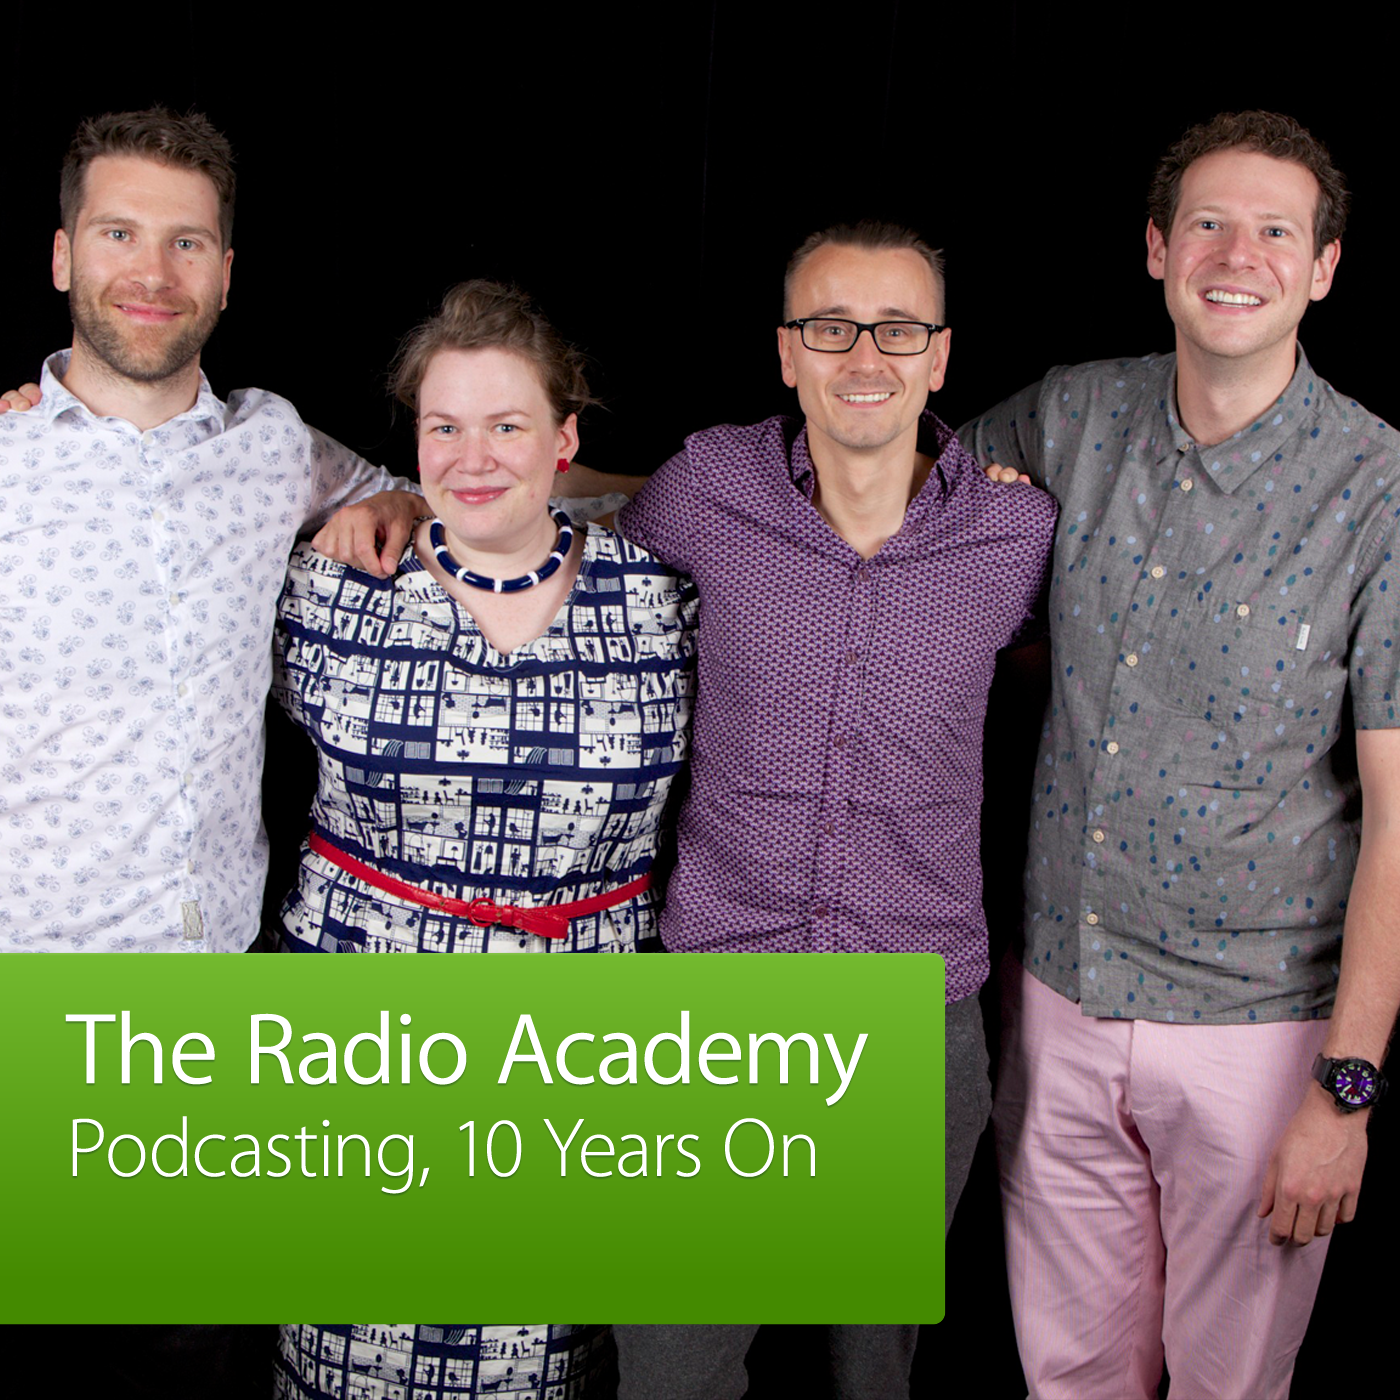 Podcasting, 10 Years On: The Radio Academy